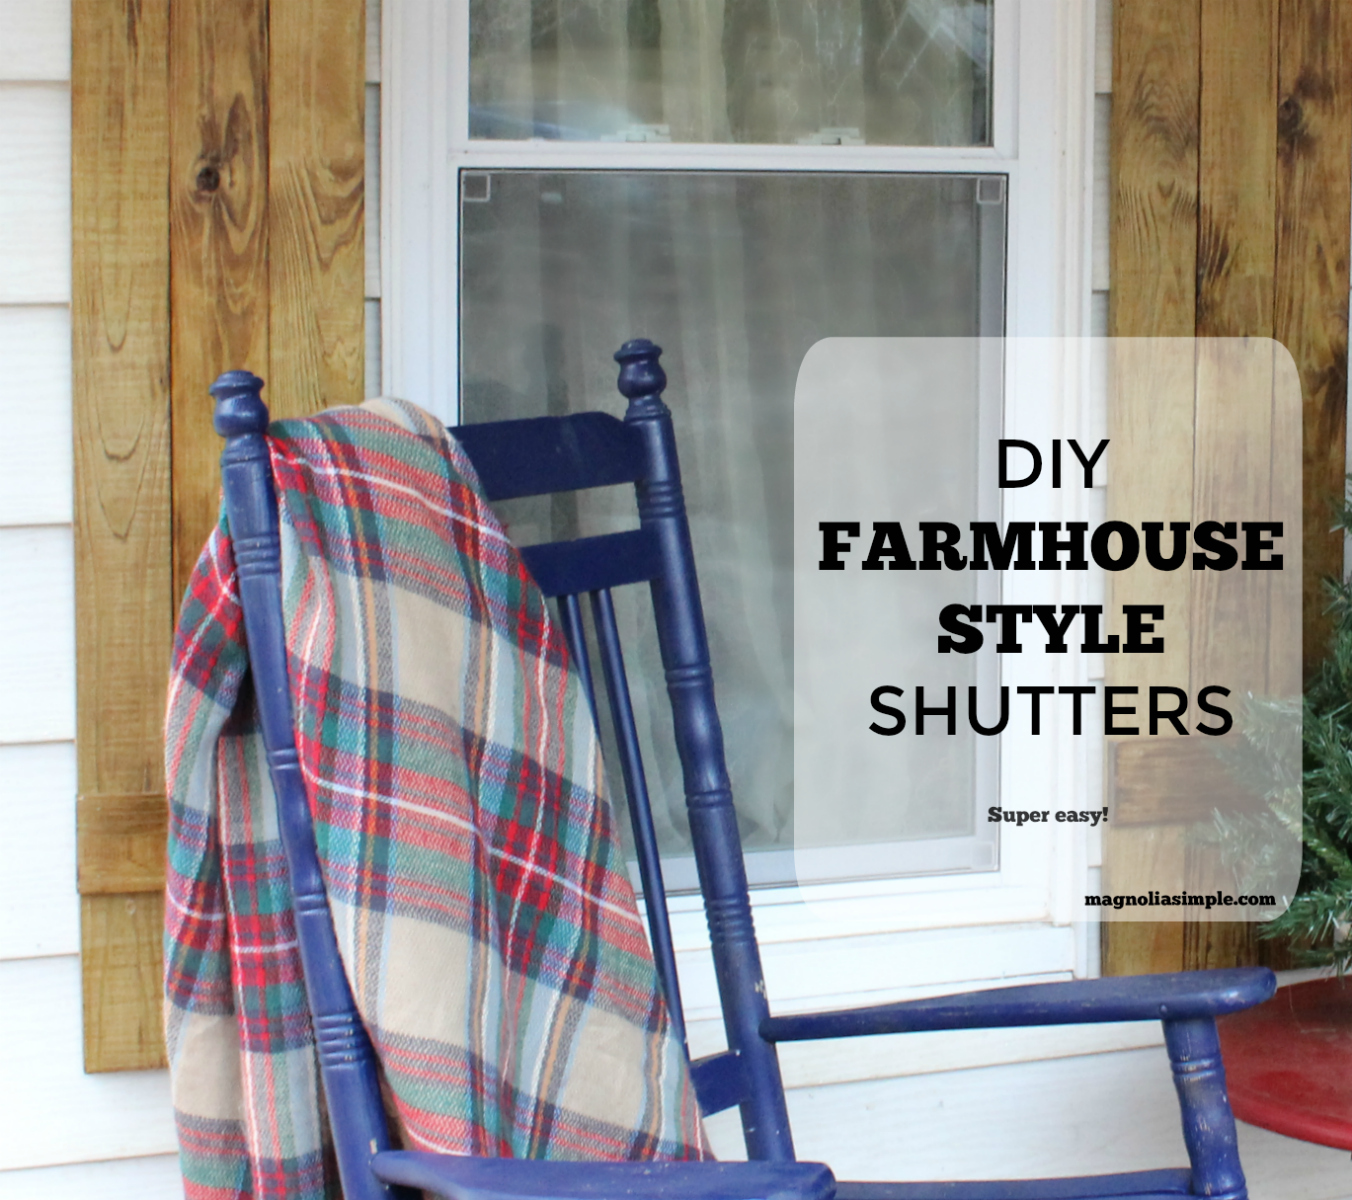 diy-farmhouse-style-shutters